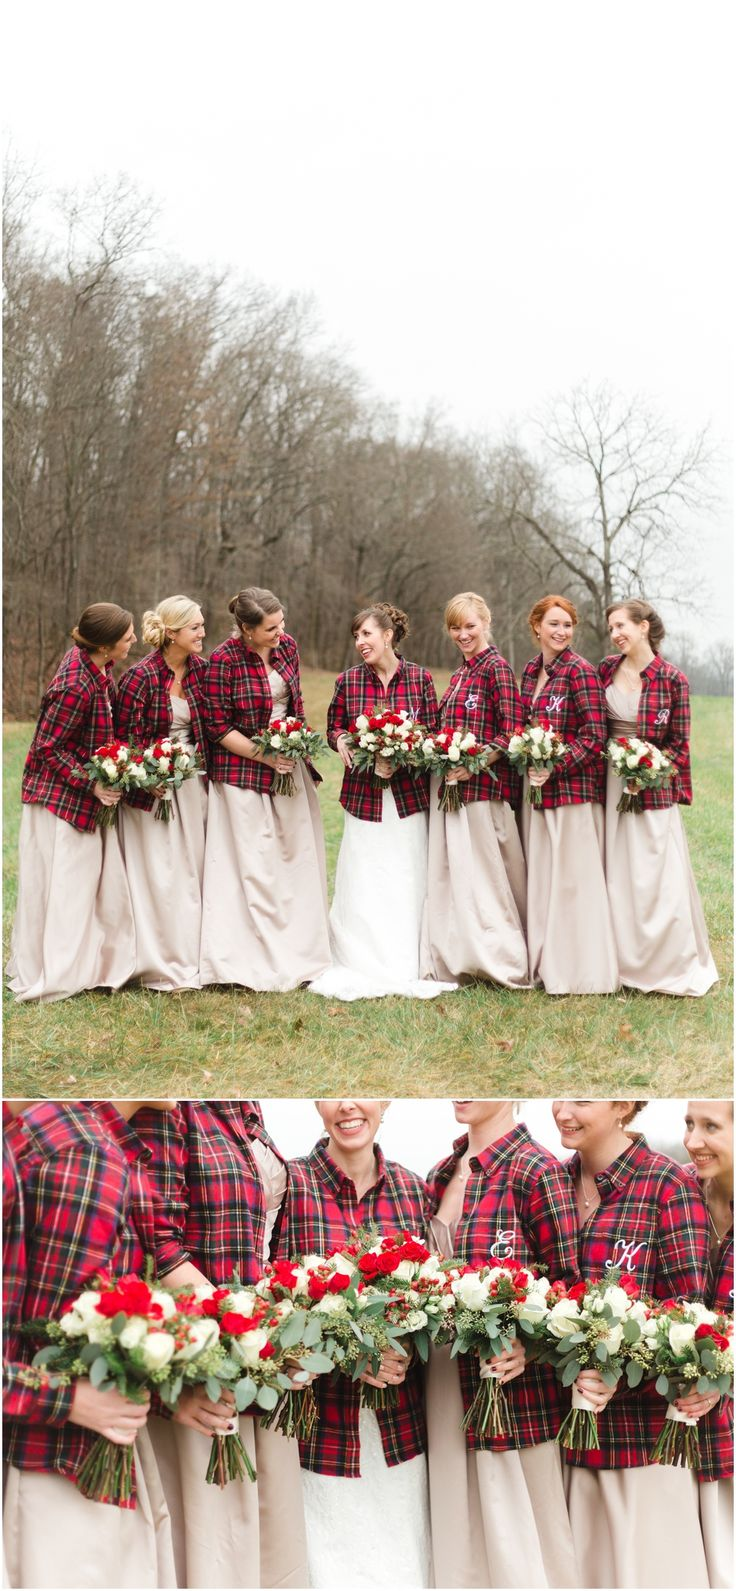 Wintery wedding with red flannel shirts for the bridesmaids - such a cute idea!